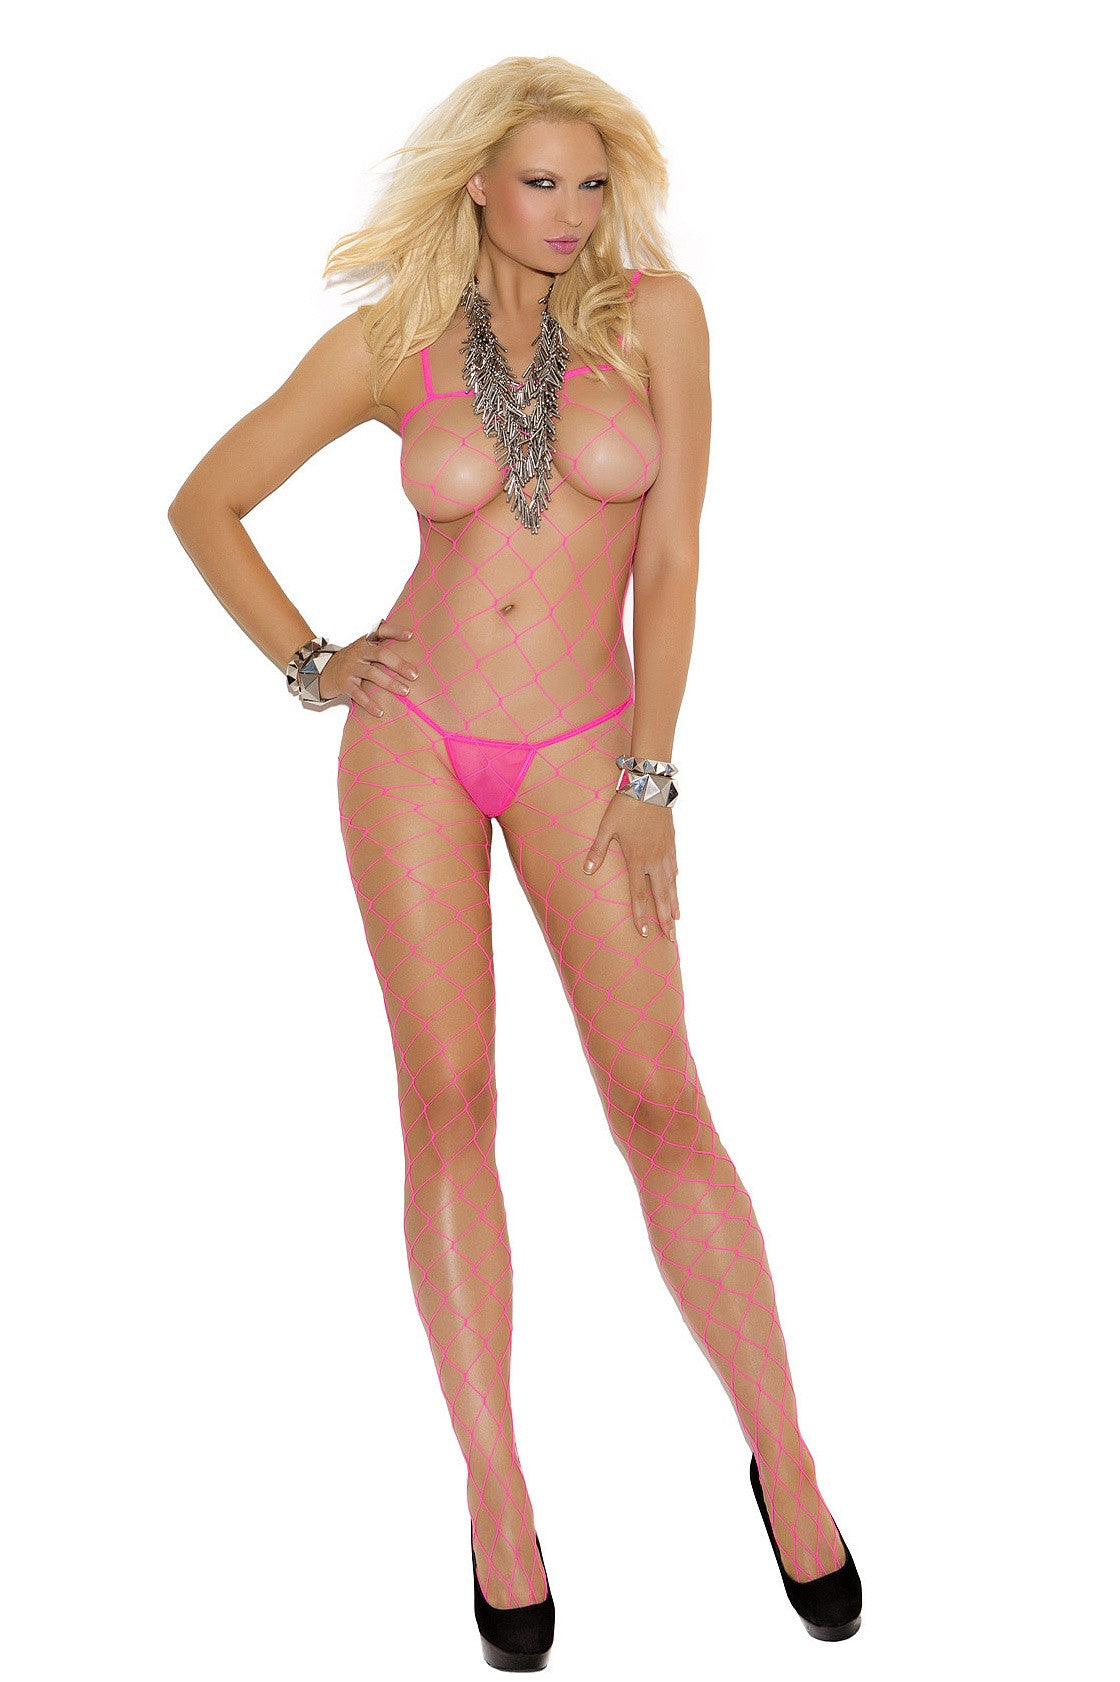 EM-1622 Lycra diamond net bodystocking - Sexylingerieland